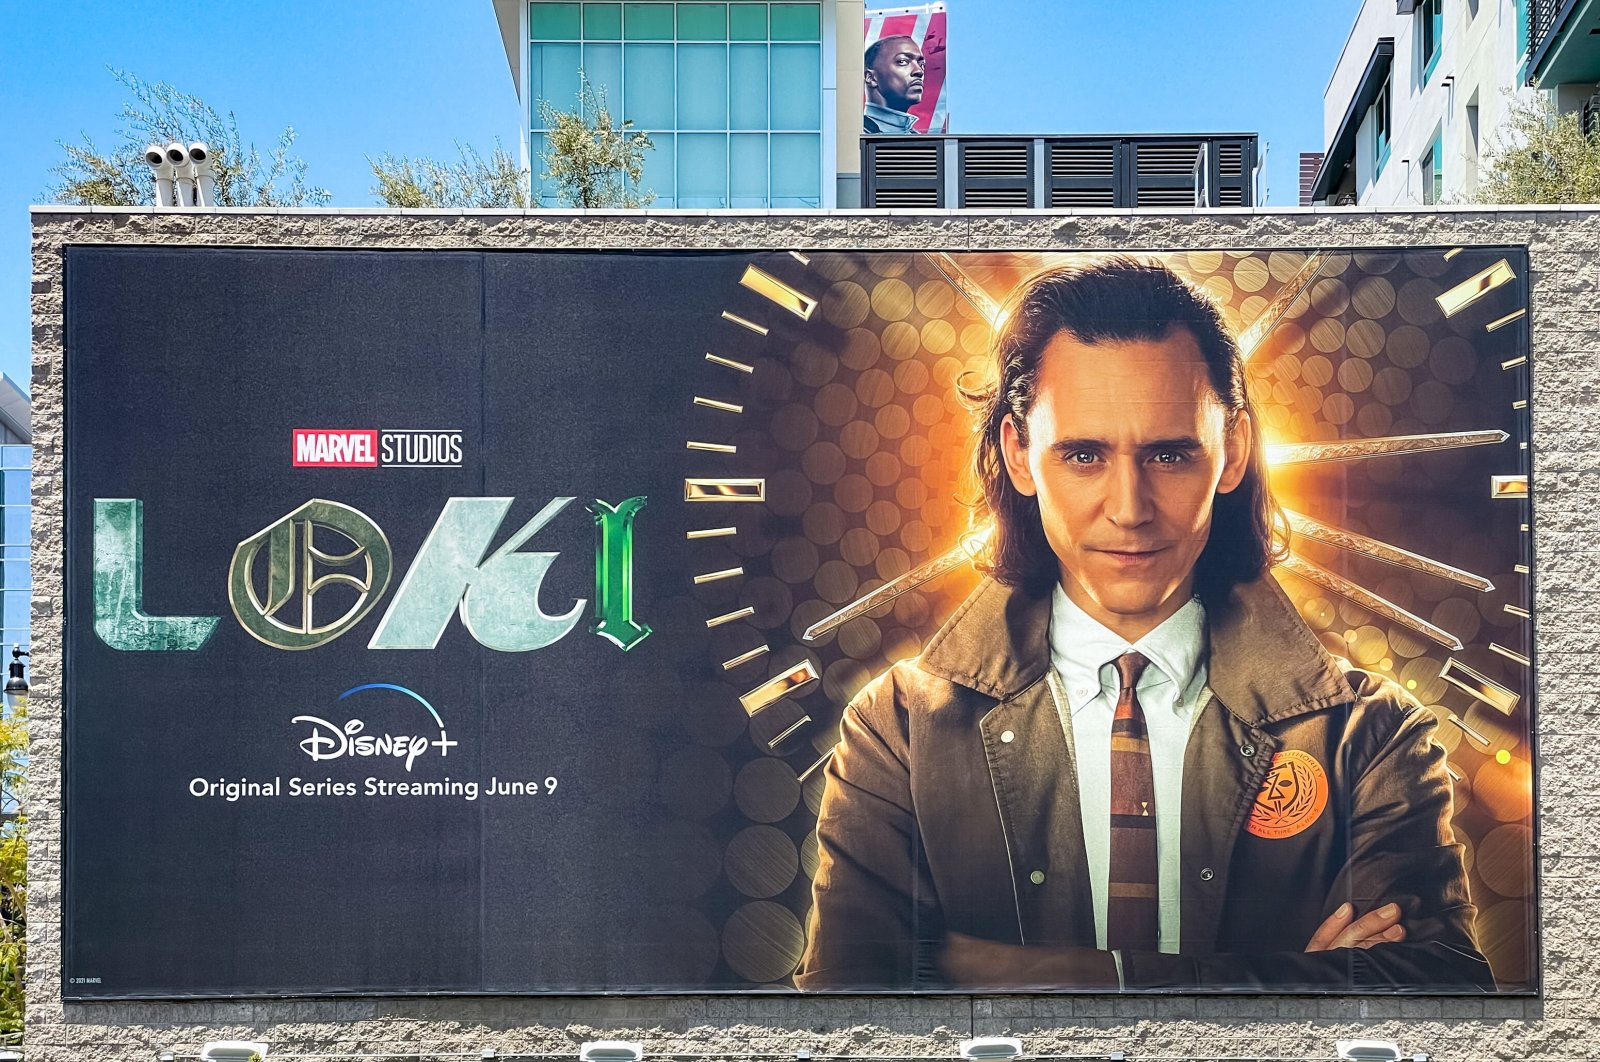 """A general view of a billboard promoting the Disney+ show """"Loki,"""" in Los Angeles, U.S., June 4, 2021. (Getty Images)"""